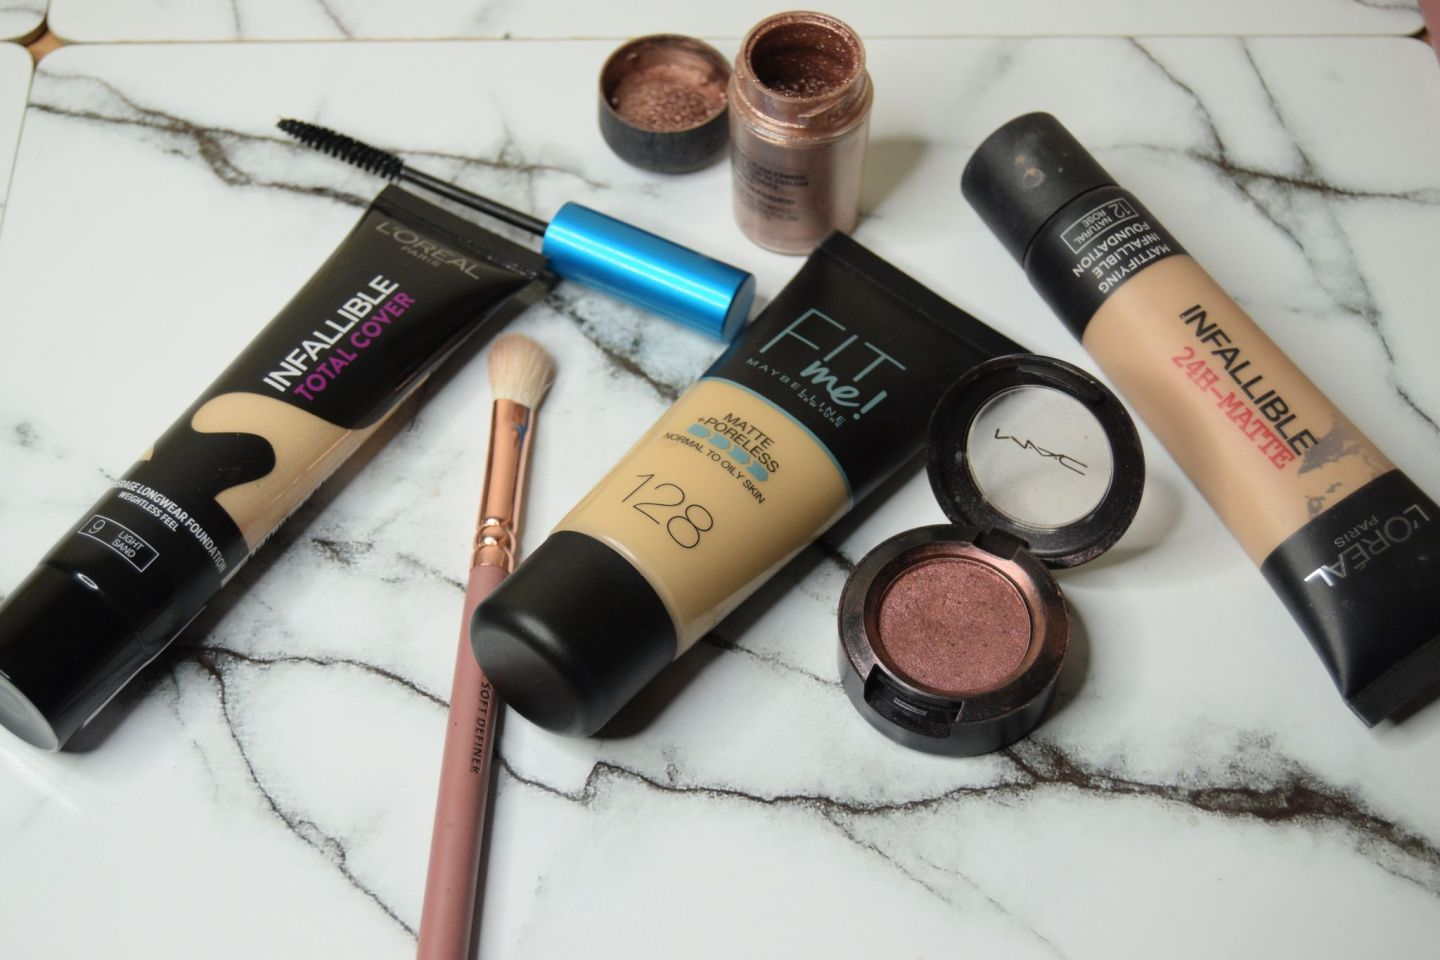 Top 3 Drugstore Foundations